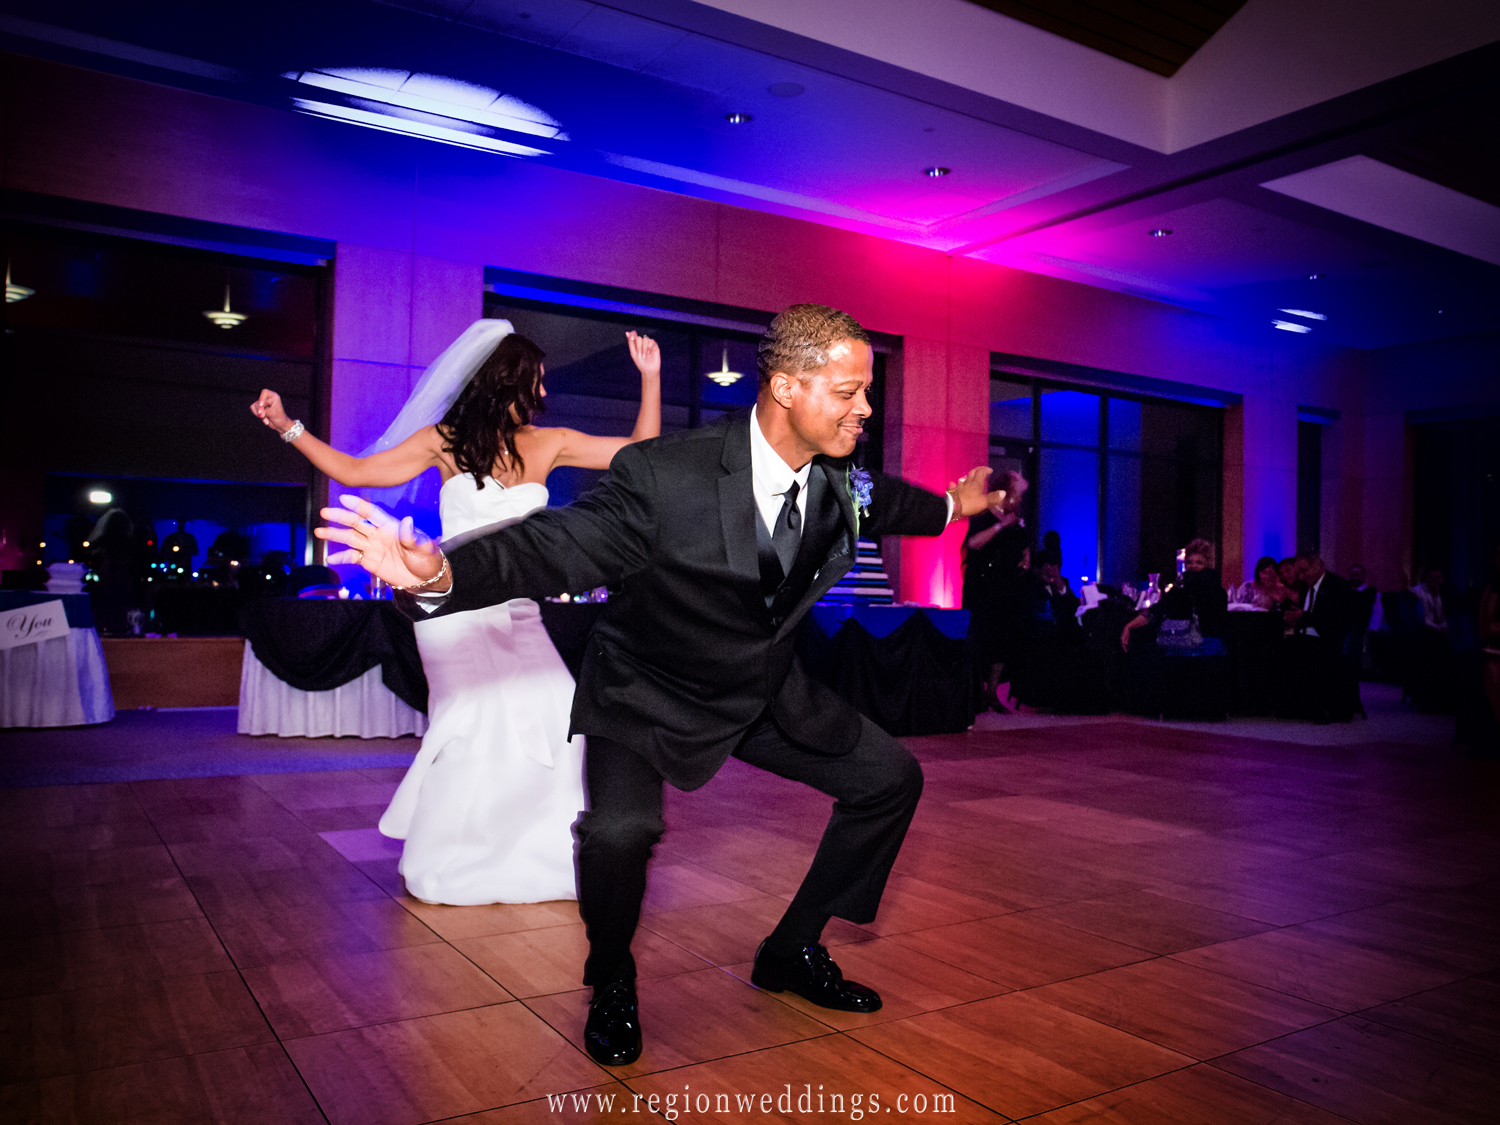 Father and daughter boogie down on the dance floor at the Centennial Park clubhouse.